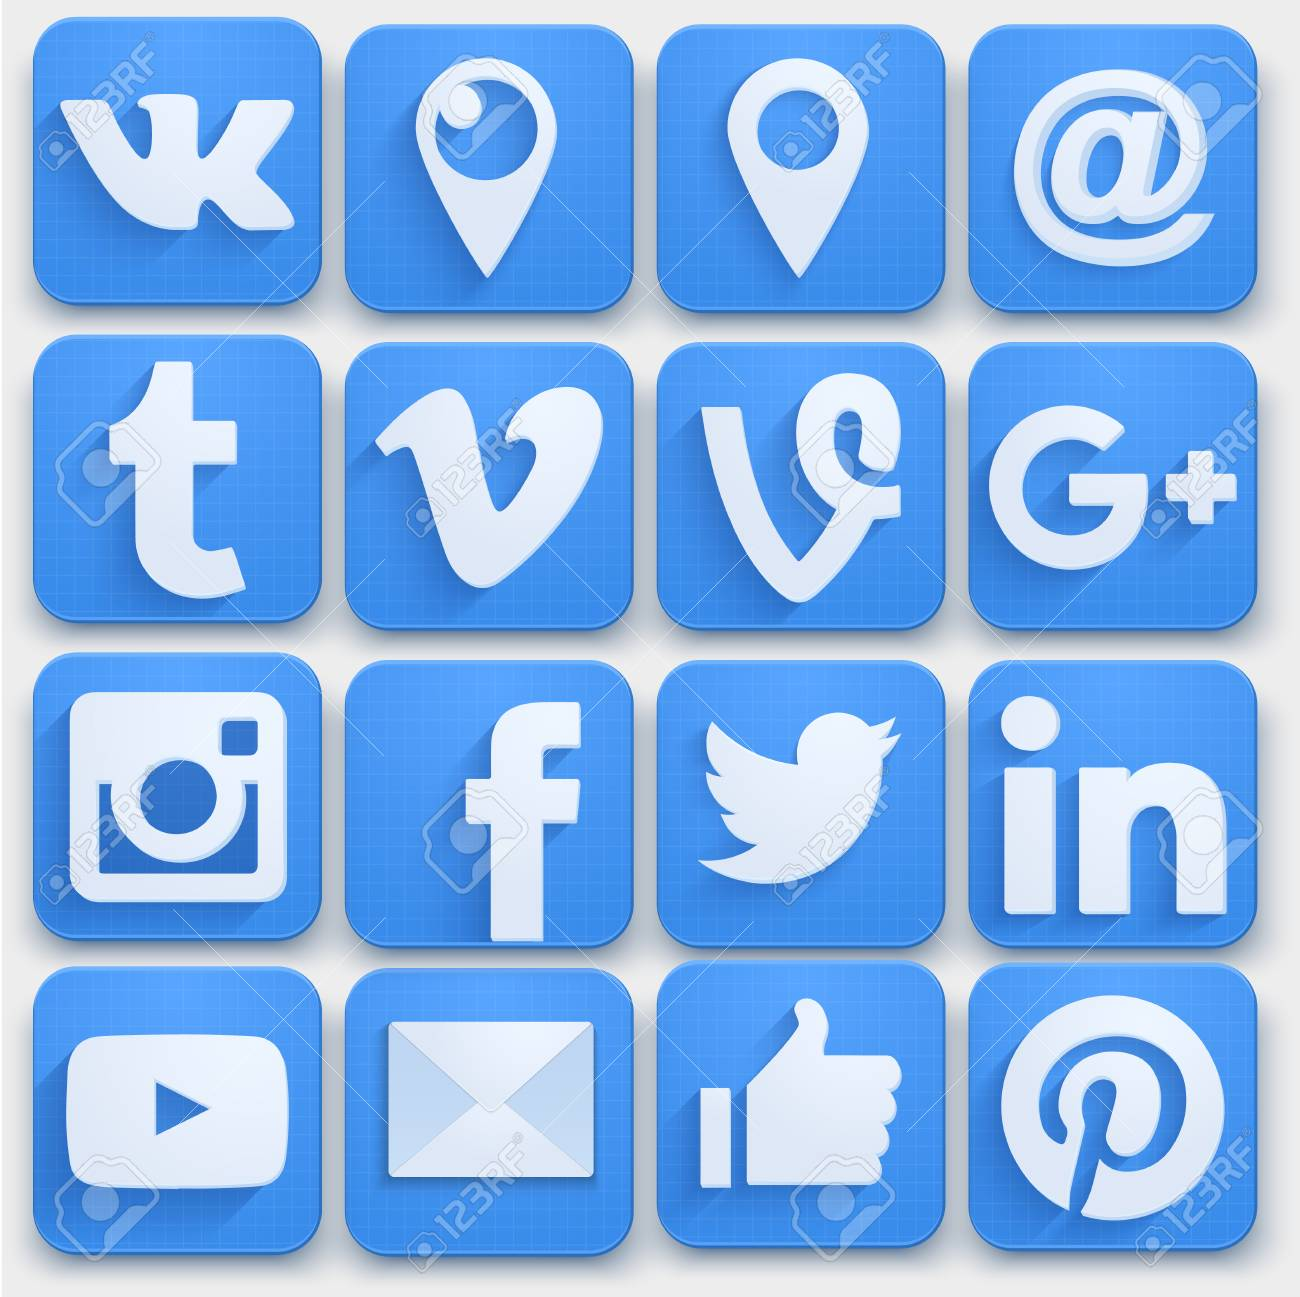 Set of Social media icons networking. Premium style. Vector llustration. - 51284336